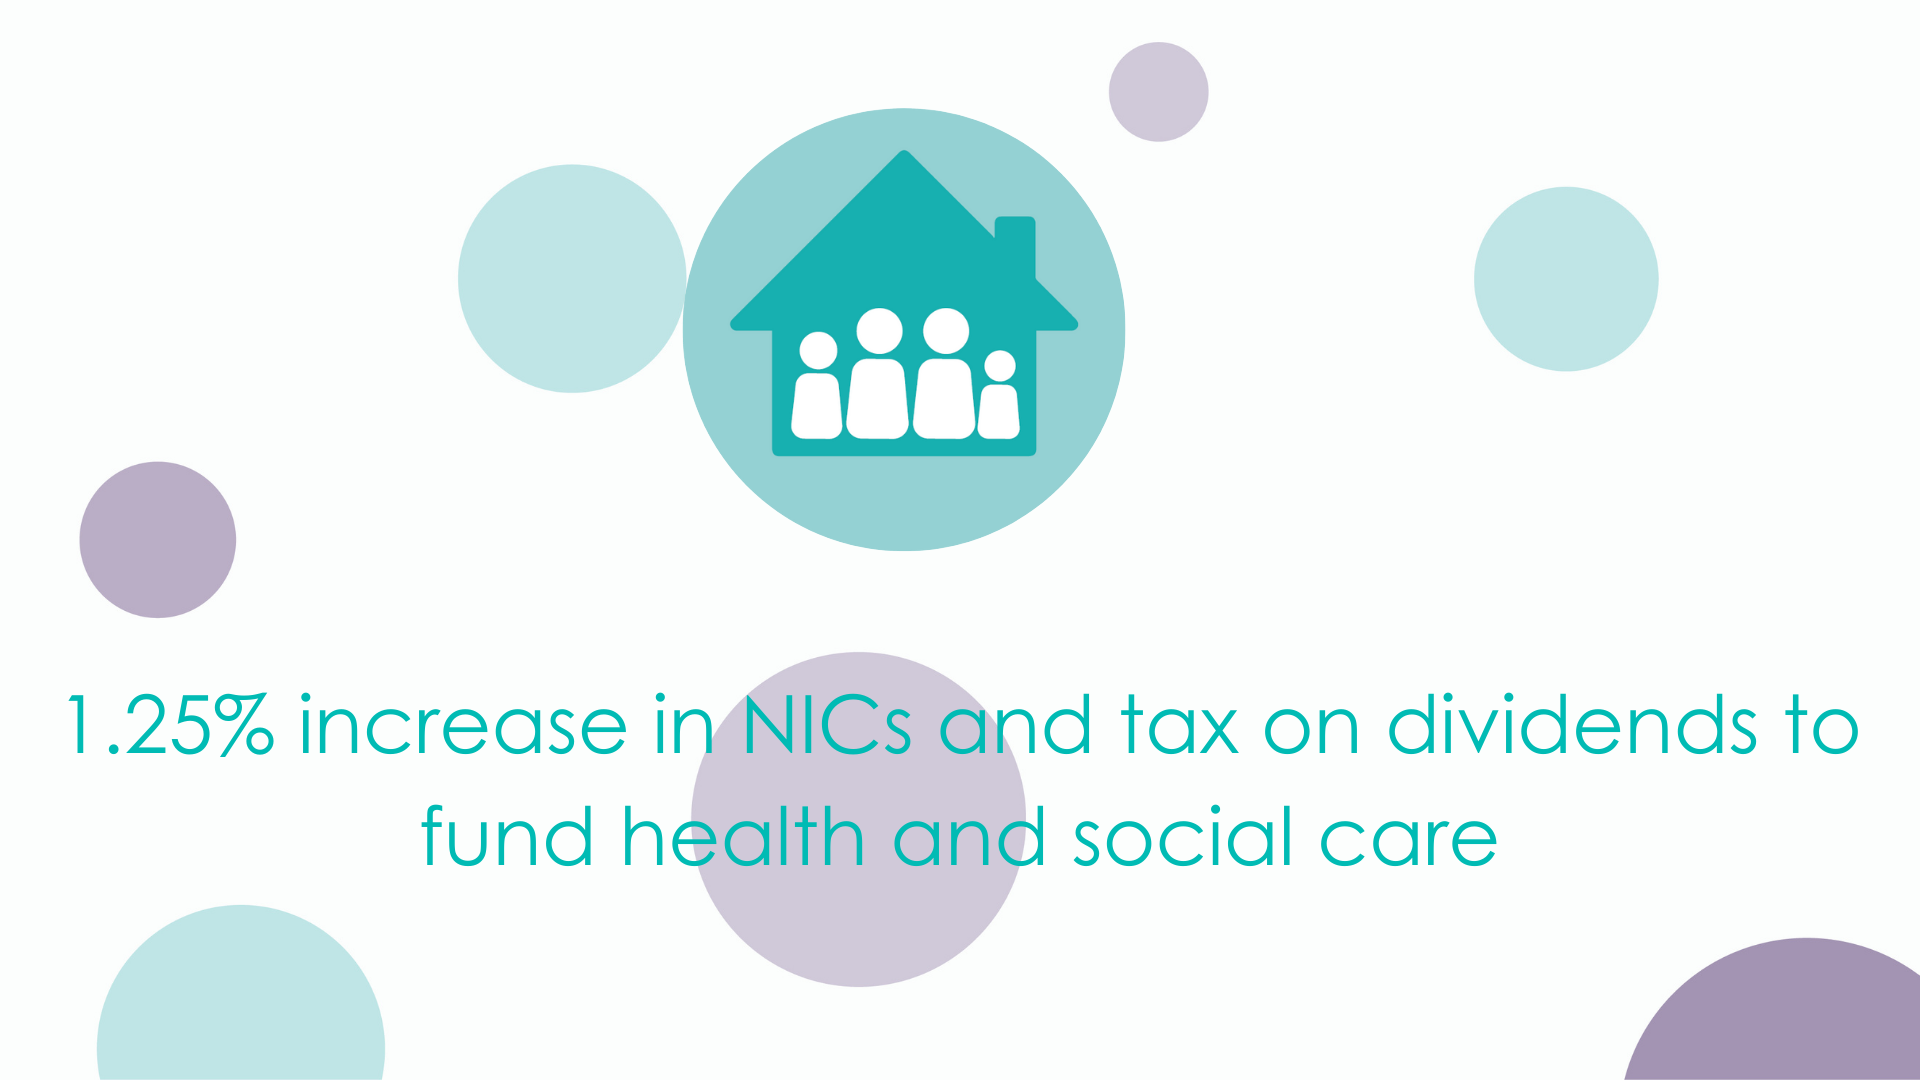 1.25% increase in NICs and tax on dividends to fund health and social care